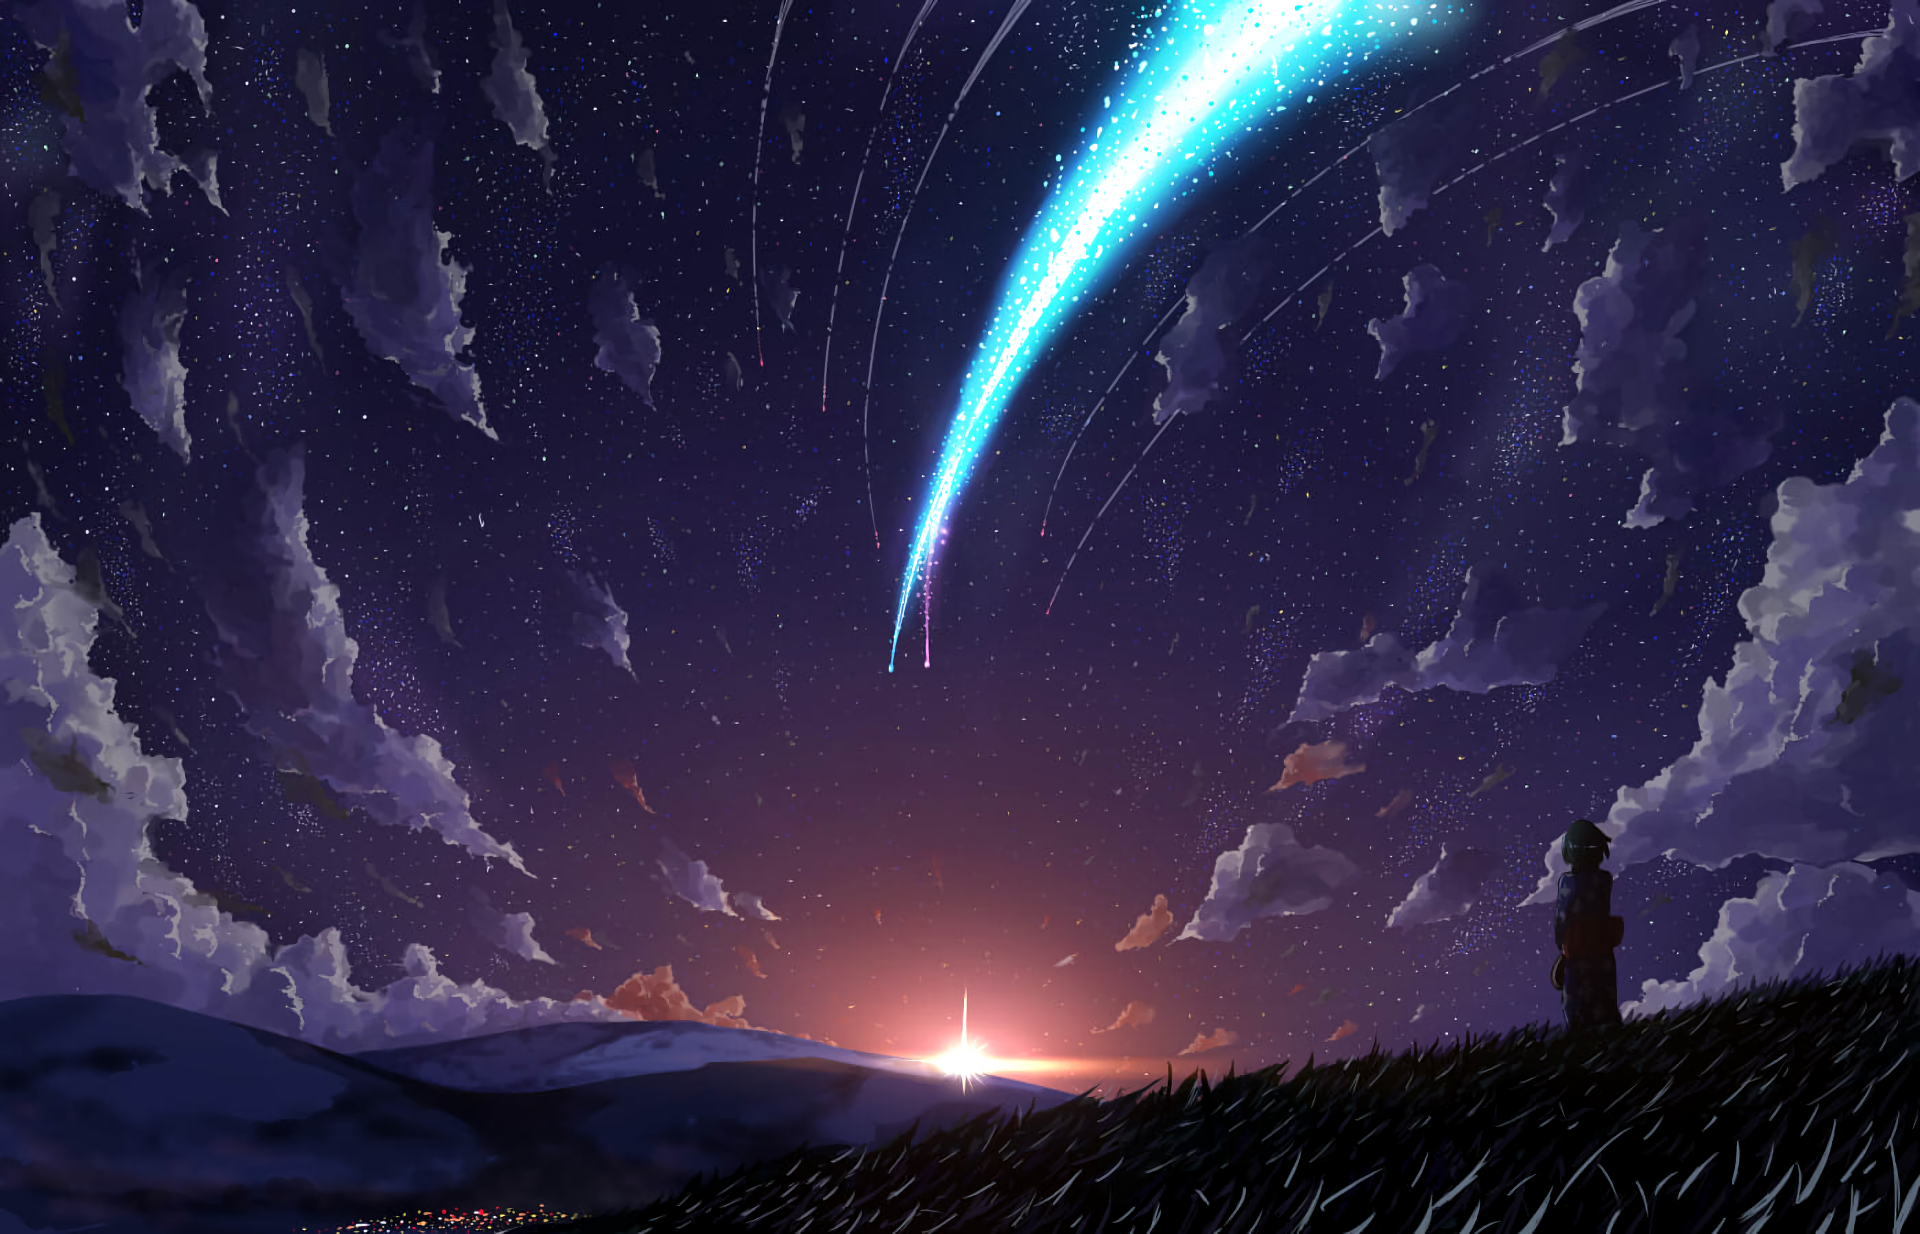 Anime Your Name Mitsuha Miyamizu Kimi No Na Wa Wallpaper Kimi No Na Wa Wallpaper Kimi No Na Wa Your Name Wallpaper